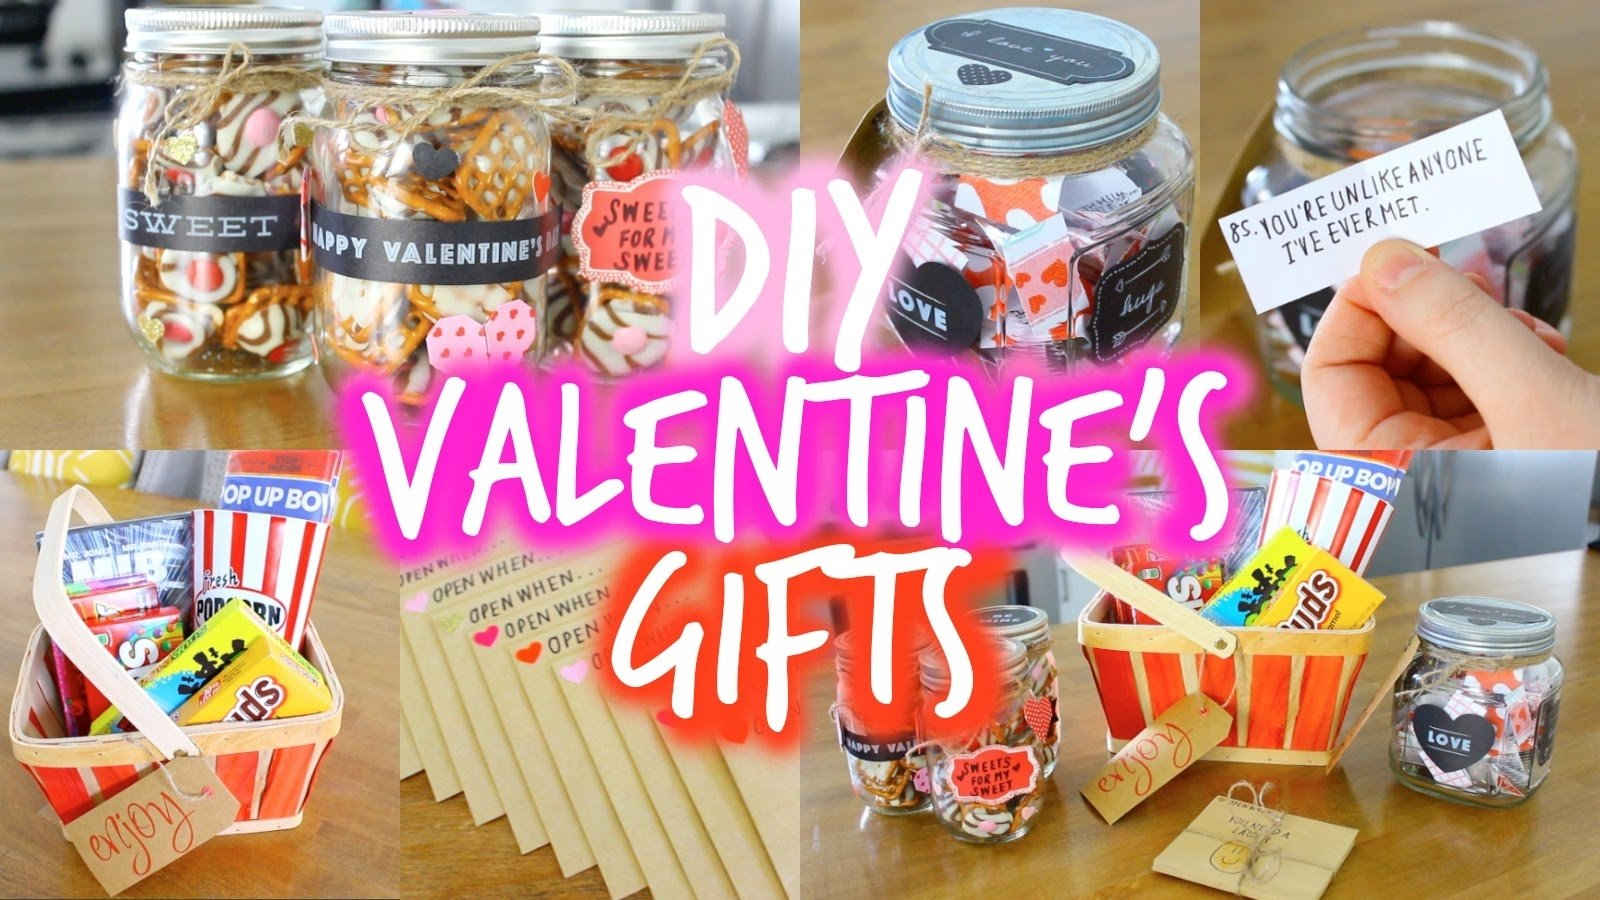 10 Lovable What To Get A Guy For Valentines Day Ideas easy diy valentines day gift ideas for your boyfriend youtube 71 2021